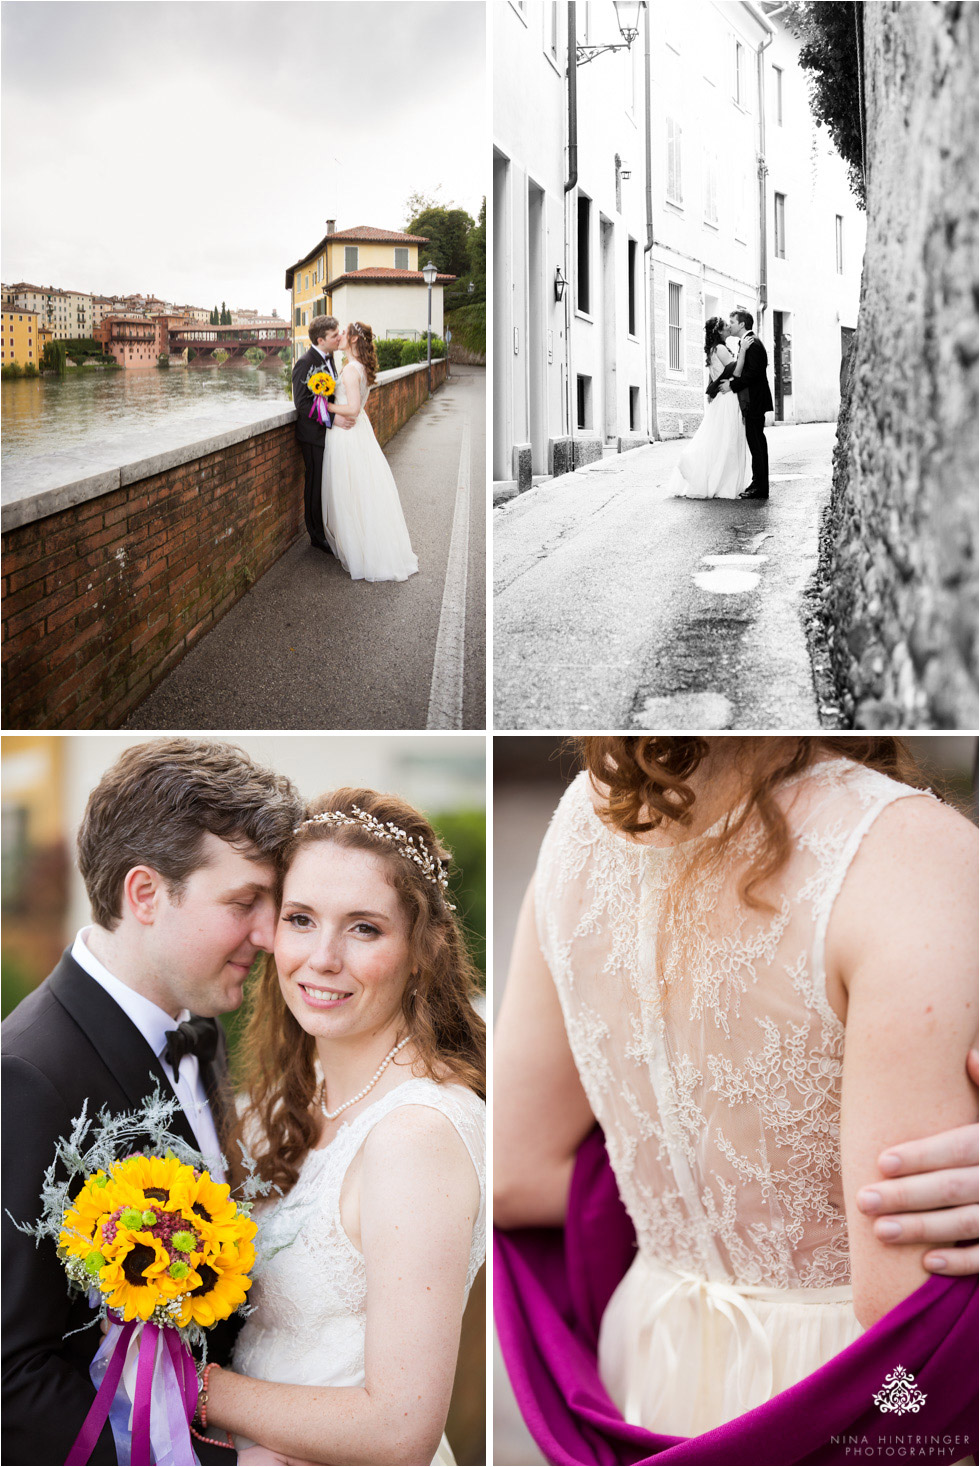 Wedding portraits in front of the Ponte Vecchio in Bassano del Grappa, Italy - Blog of Nina Hintringer Photography - Wedding Photography, Wedding Reportage and Destination Weddings